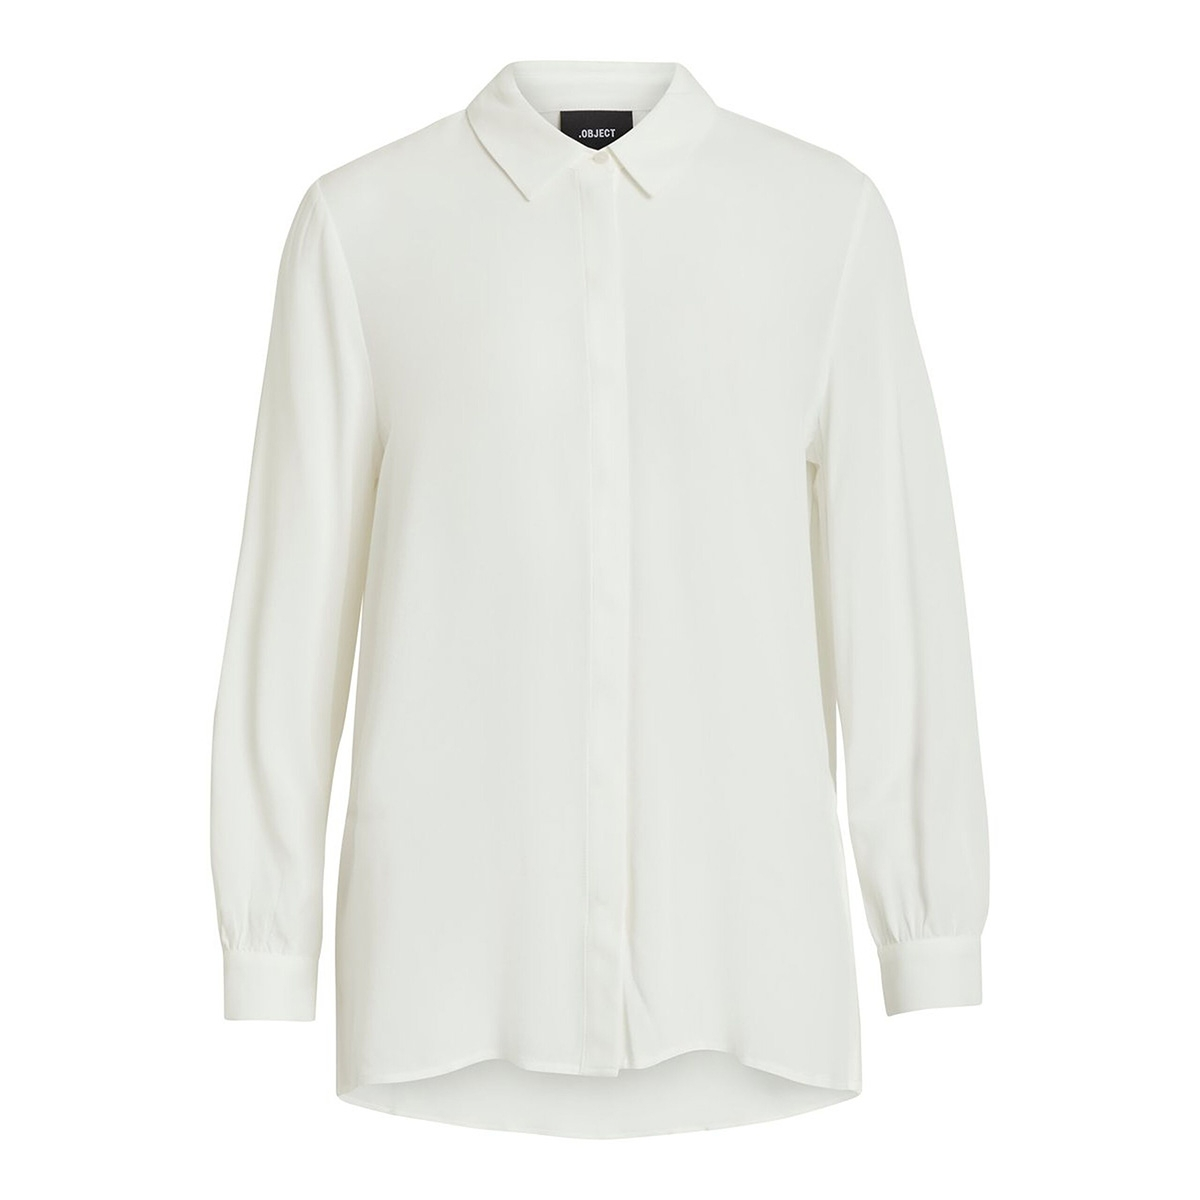 objbay l/s shirt noos 23030253 object blouse white